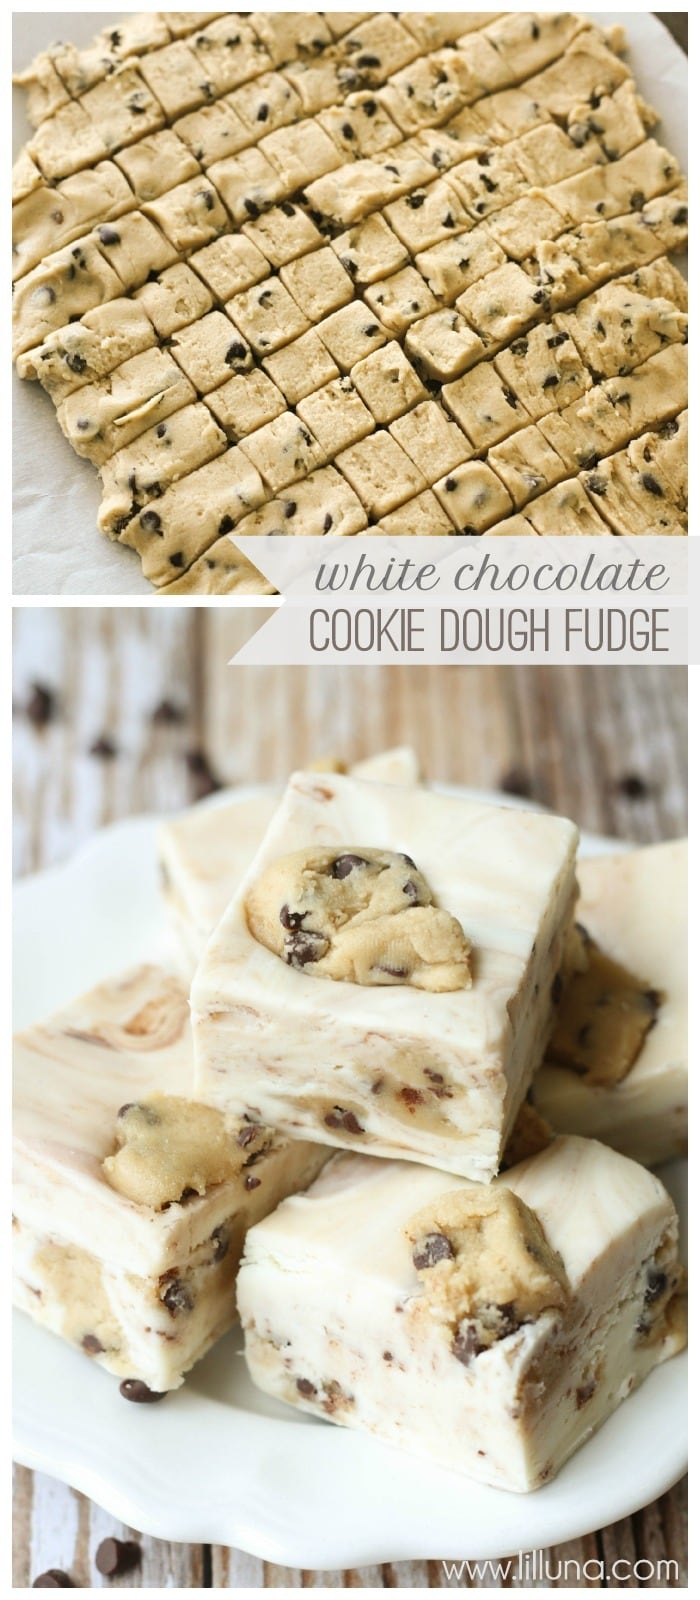 DELICIOUS White Chocolate Cookie Dough Fudge recipe { lilluna.com } Eggless cookie dough mixed in a creamy white fudge made with white chocolate chips, marshmallow fluff, and heavy cream!